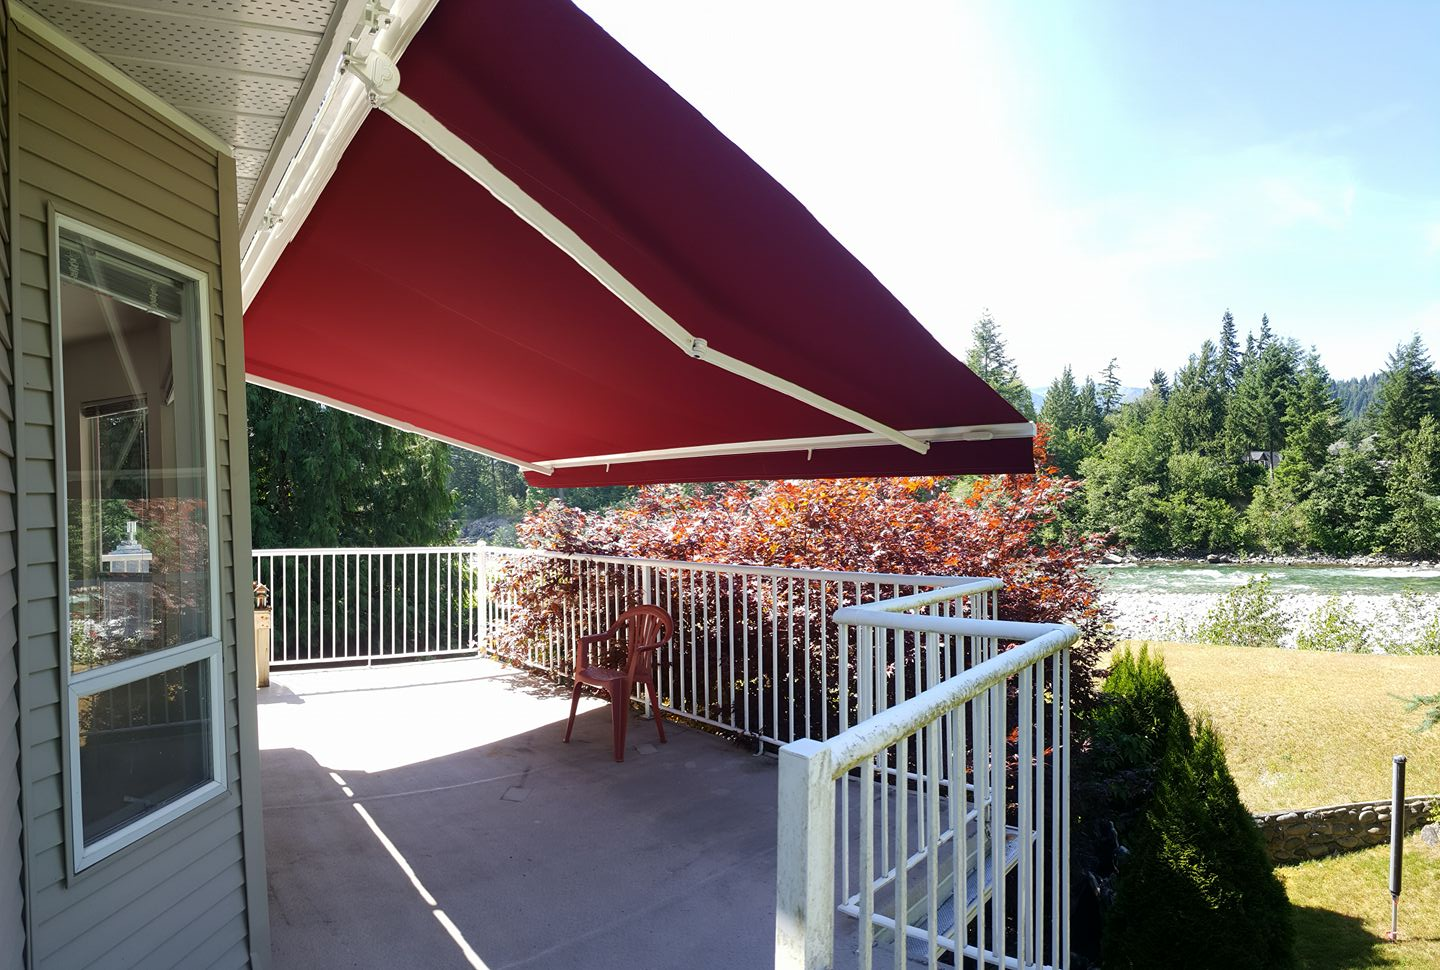 pergola install rm services per glass mild feet square and house awning supply promotions steel with to